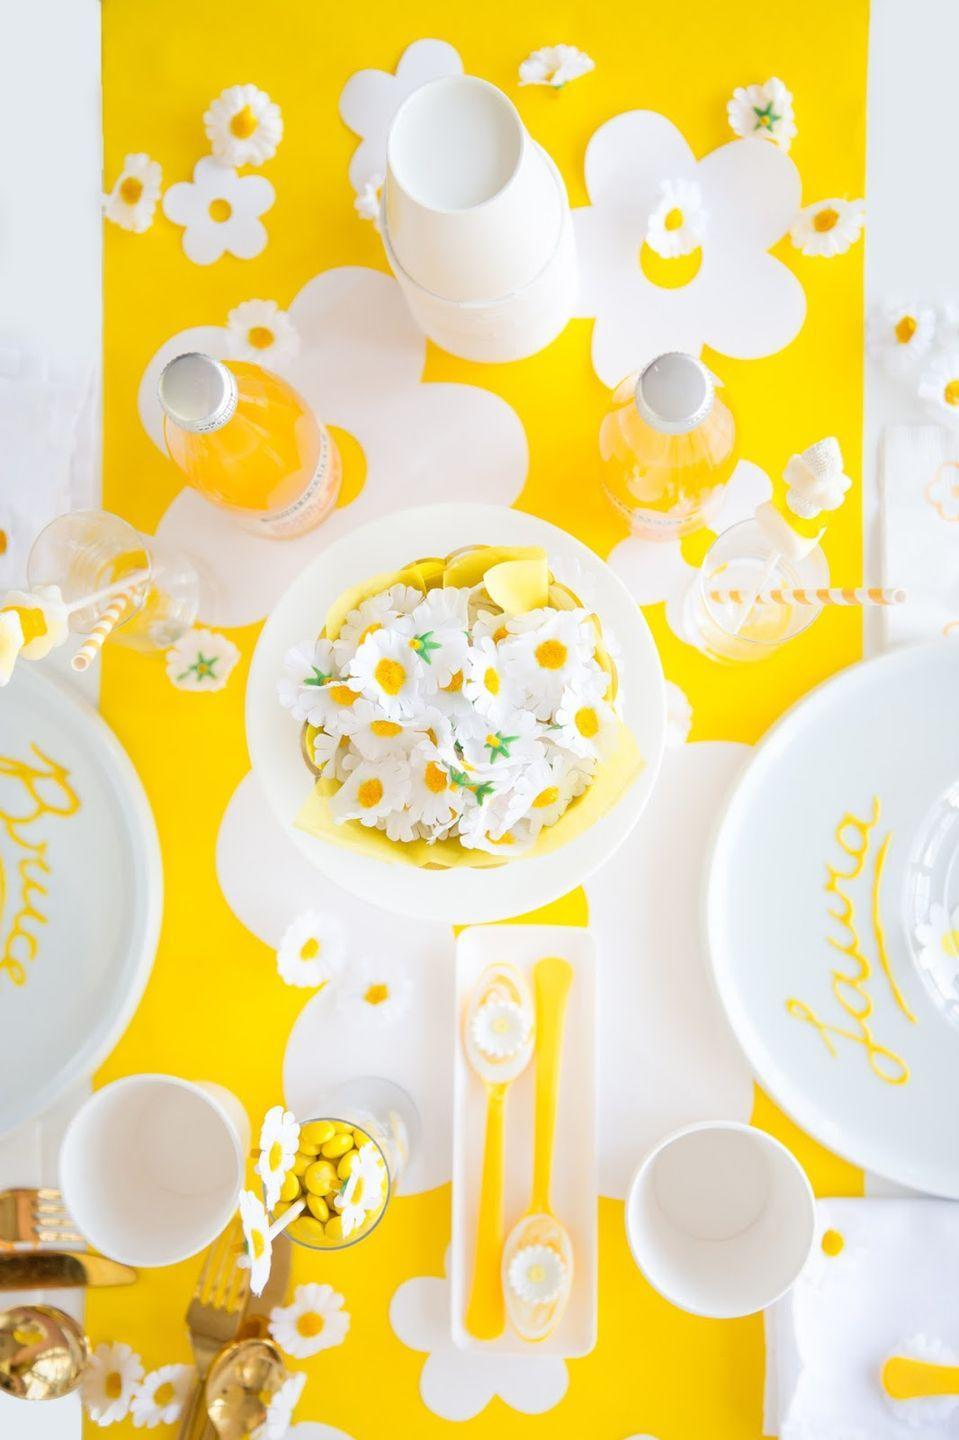 "<p>If you're turning 50 in 2021, you were born in the early '70s. So what better way to celebrate than with a retro-themed birthday party? Put your flower power on display with a playful daisy-themed tablescape. </p><p><strong>See more on <a href=""http://www.awwsam.com/2016/03/spring-party-hacks.html"" rel=""nofollow noopener"" target=""_blank"" data-ylk=""slk:Aww Sam"" class=""link rapid-noclick-resp"">Aww Sam</a>. </strong></p><p><strong><a class=""link rapid-noclick-resp"" href=""https://go.redirectingat.com?id=74968X1596630&url=https%3A%2F%2Fwww.walmart.com%2Fip%2FArtificial-Flower-Heads-60-Pack-Fake-Daisy-Flowers-Wedding-Decorations-Baby-Showers-Diy-Crafts-Mixed-Colors-2-1-X-2-1-X-1-inches%2F817771480&sref=https%3A%2F%2Fwww.thepioneerwoman.com%2Fhome-lifestyle%2Fentertaining%2Fg34192298%2F50th-birthday-party-ideas%2F"" rel=""nofollow noopener"" target=""_blank"" data-ylk=""slk:SHOP DAISY DECORATIONS"">SHOP DAISY DECORATIONS</a><br></strong></p>"